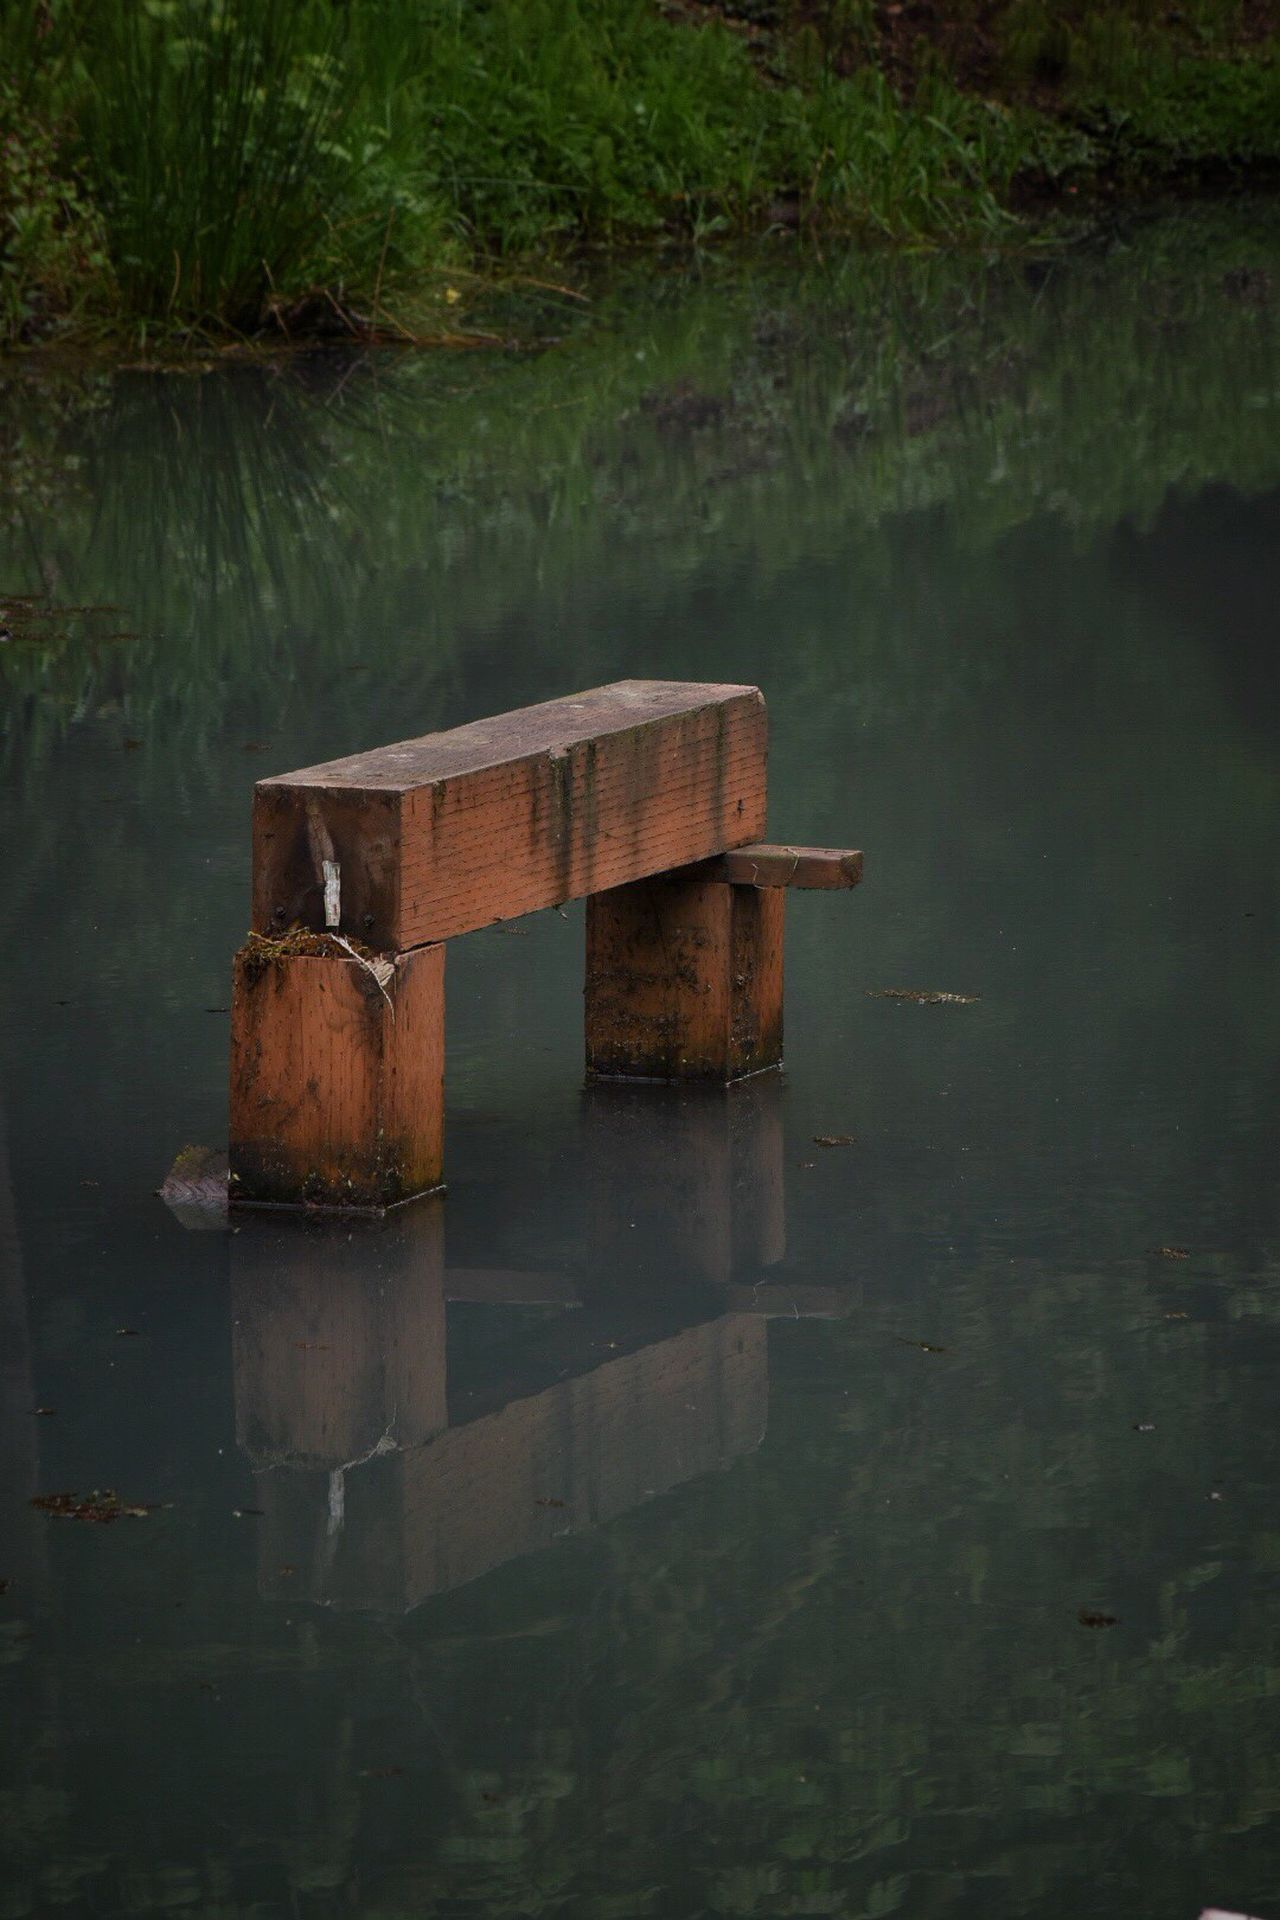 Water Reflection Outdoors Nature Day Tranquility No People Lake Waterfront Beauty In Nature Scenics The Architect - 2017 EyeEm Awards The Great Outdoors - 2017 EyeEm Awards Fragility Wood - Material Reflection Water Reflections Pond Water_collection Pond Life Wood Close-up Nature